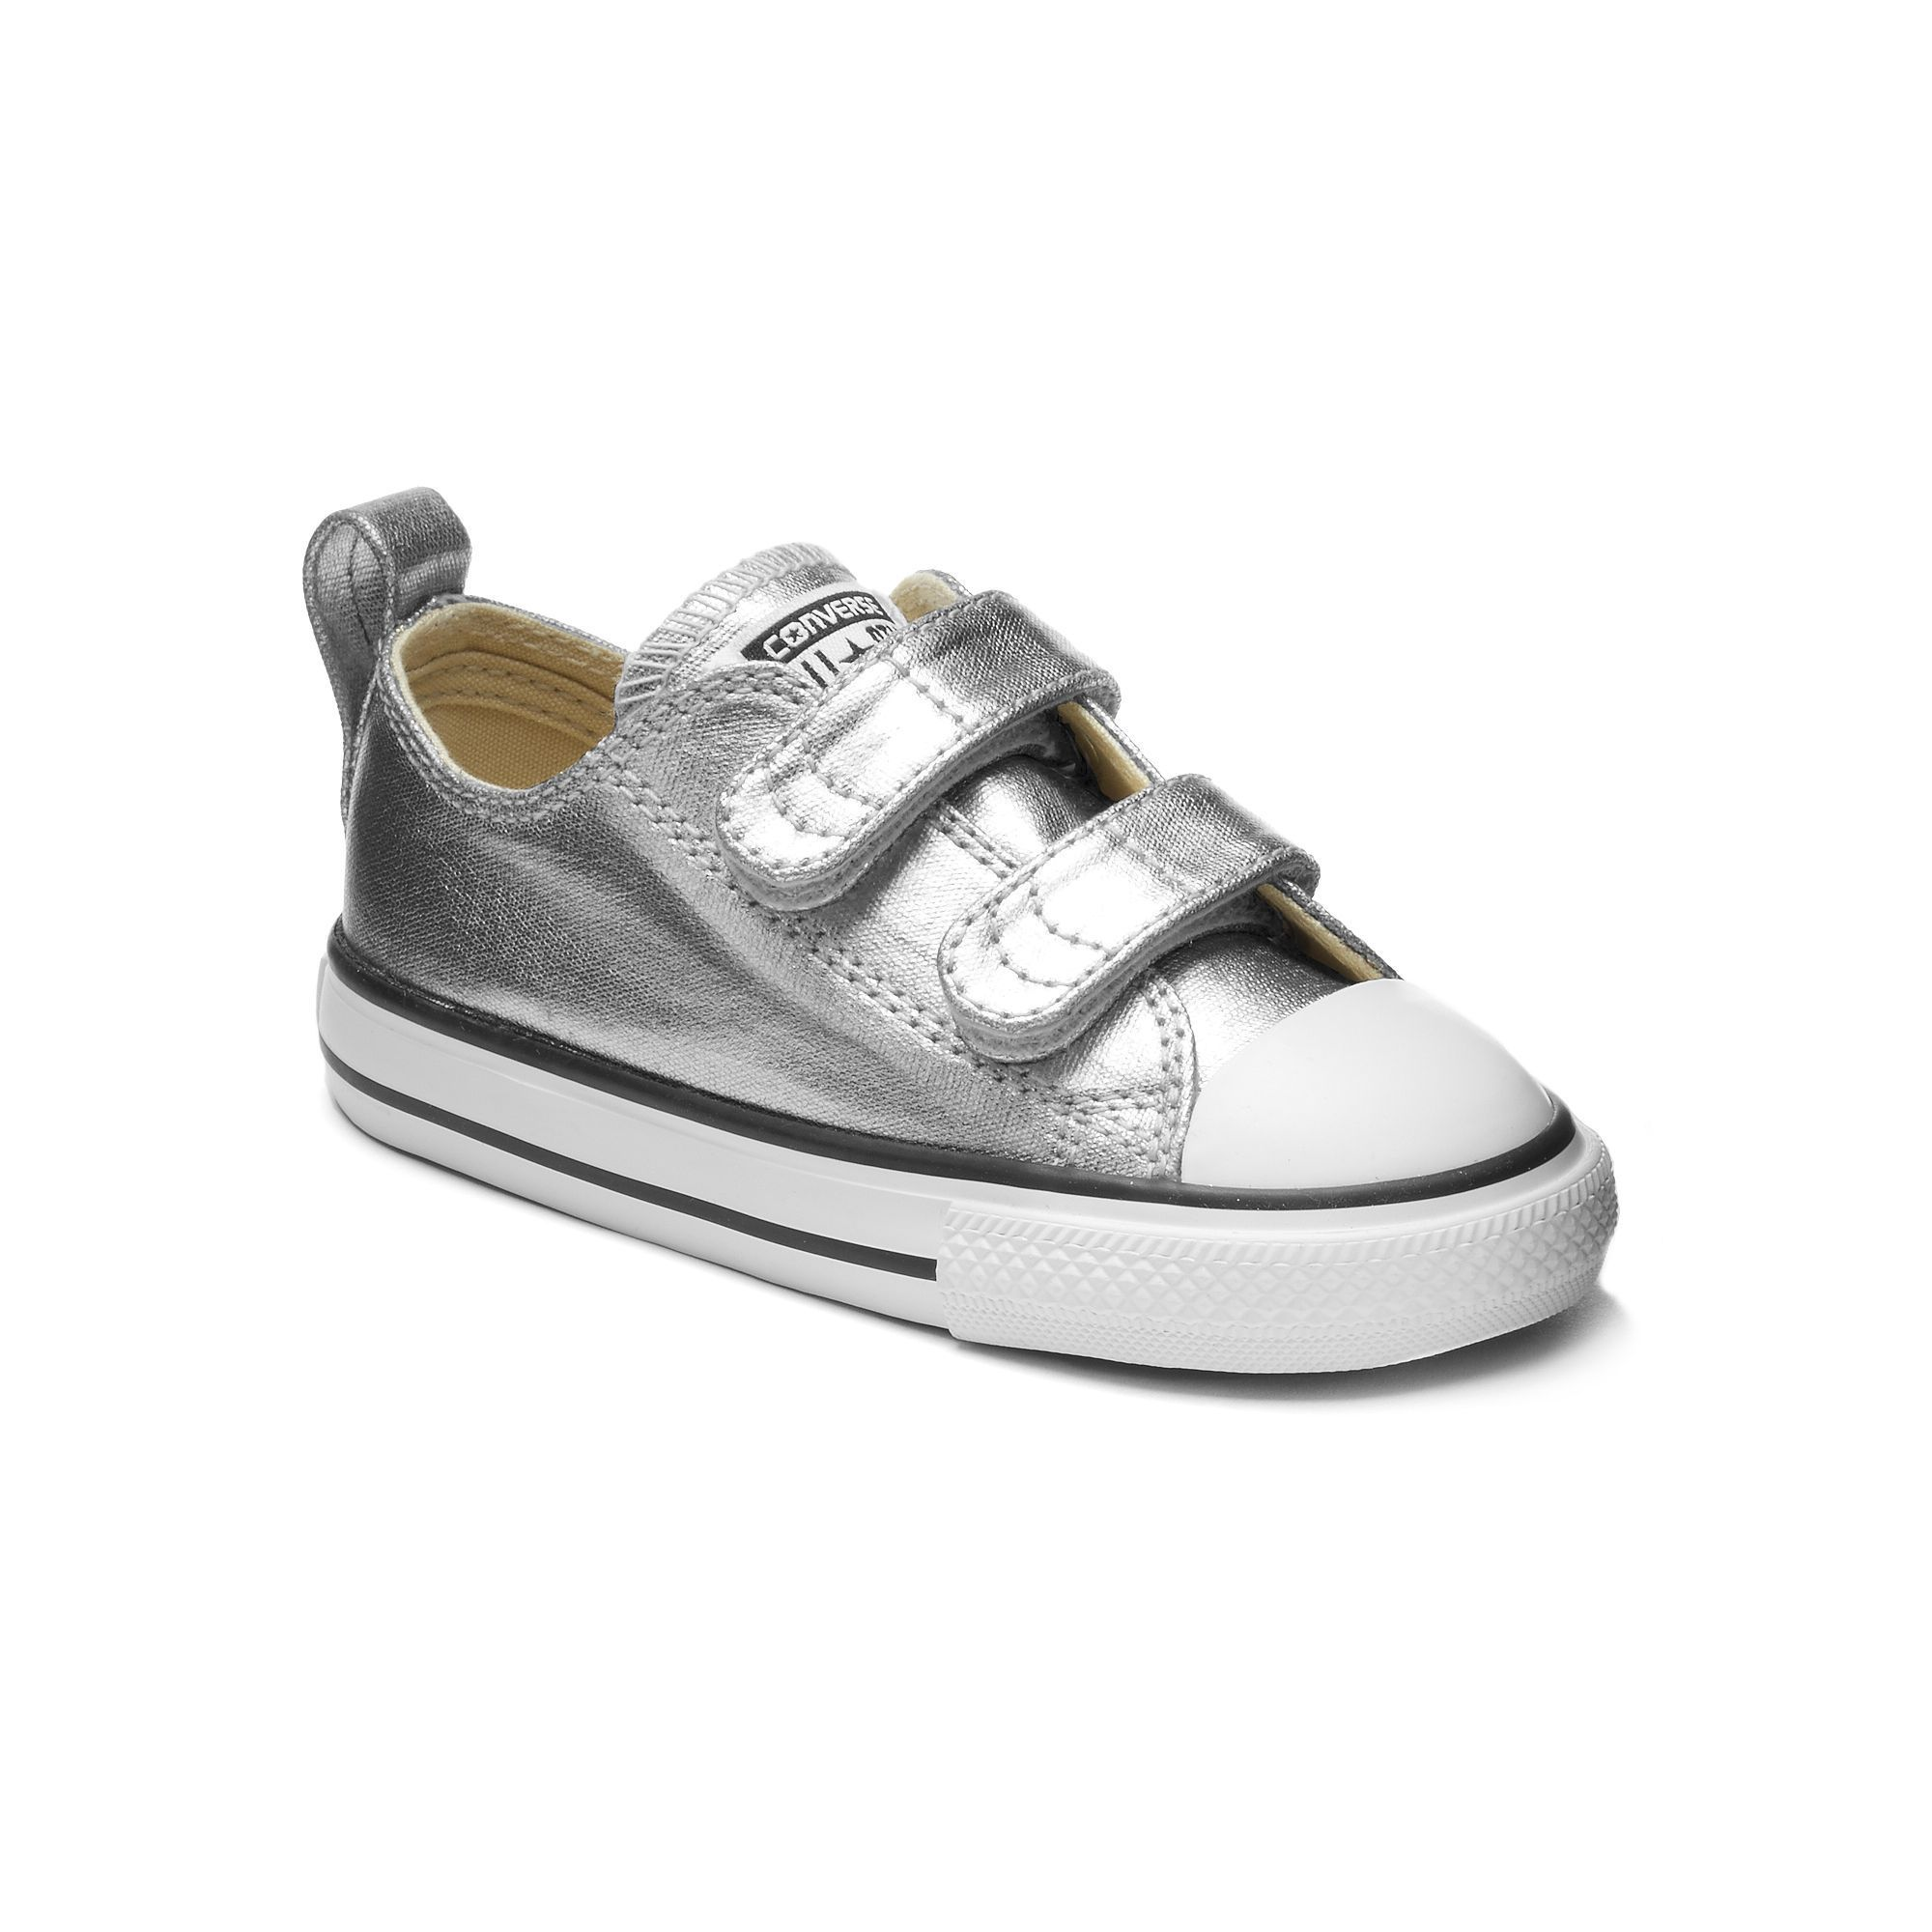 e2c6643f0308 Toddler Converse Chuck Taylor All Star Metallic Sneakers